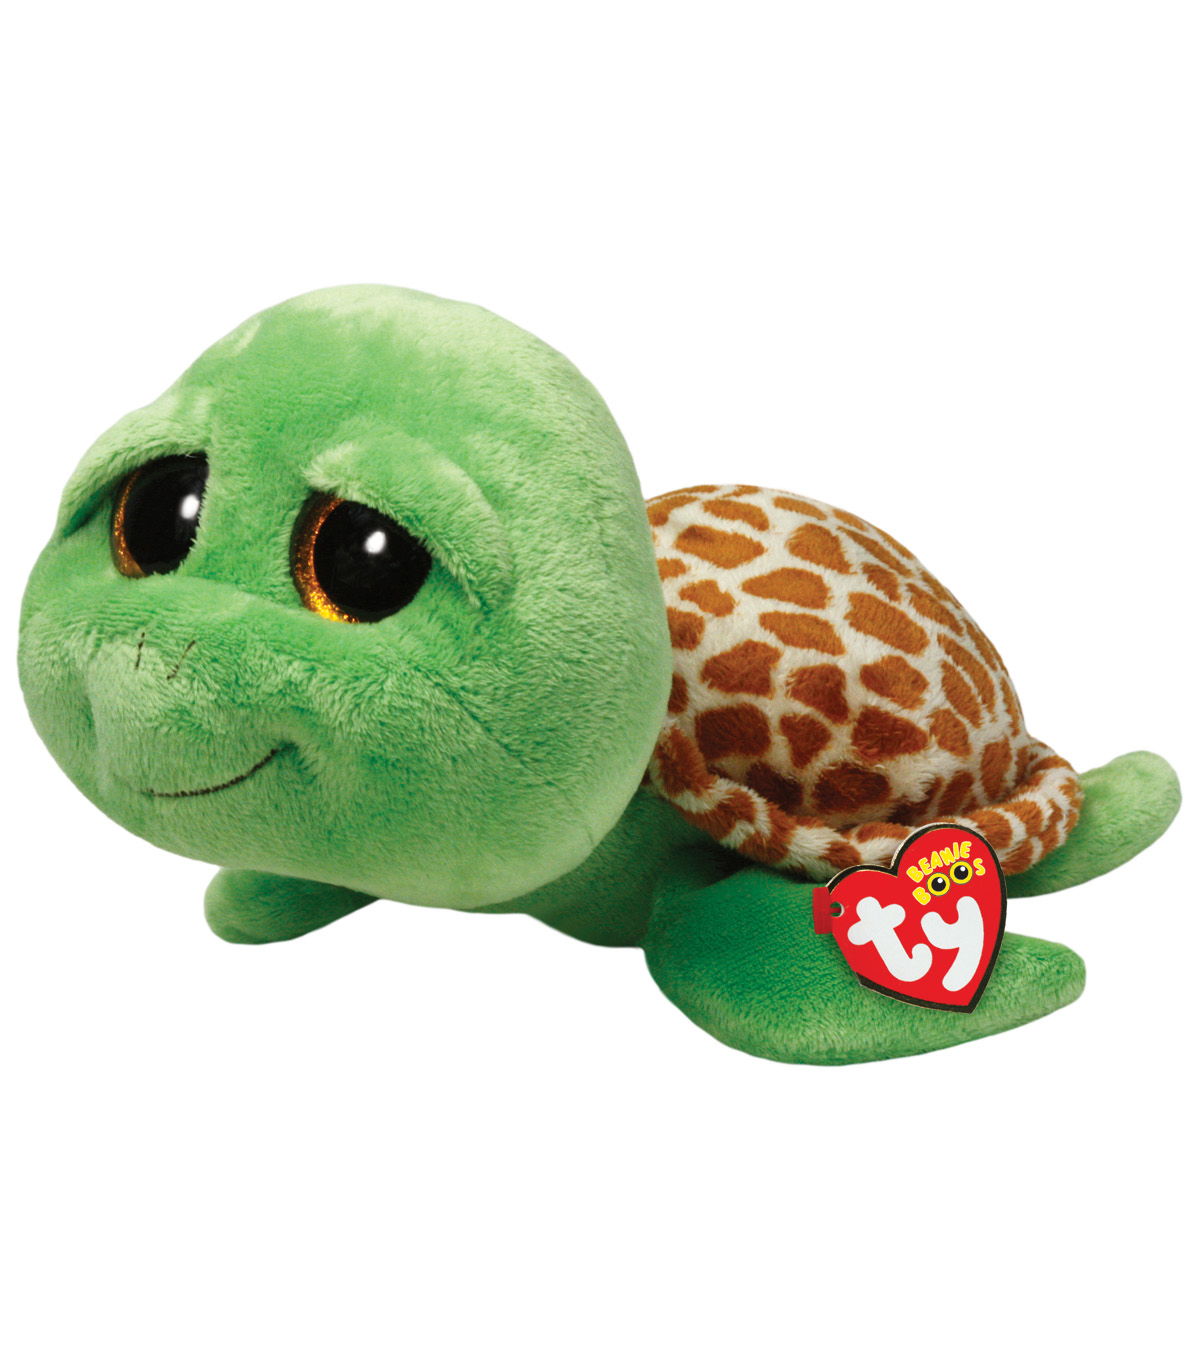 Ty Beanie Boos Zippy Green Turtle Medium Plush